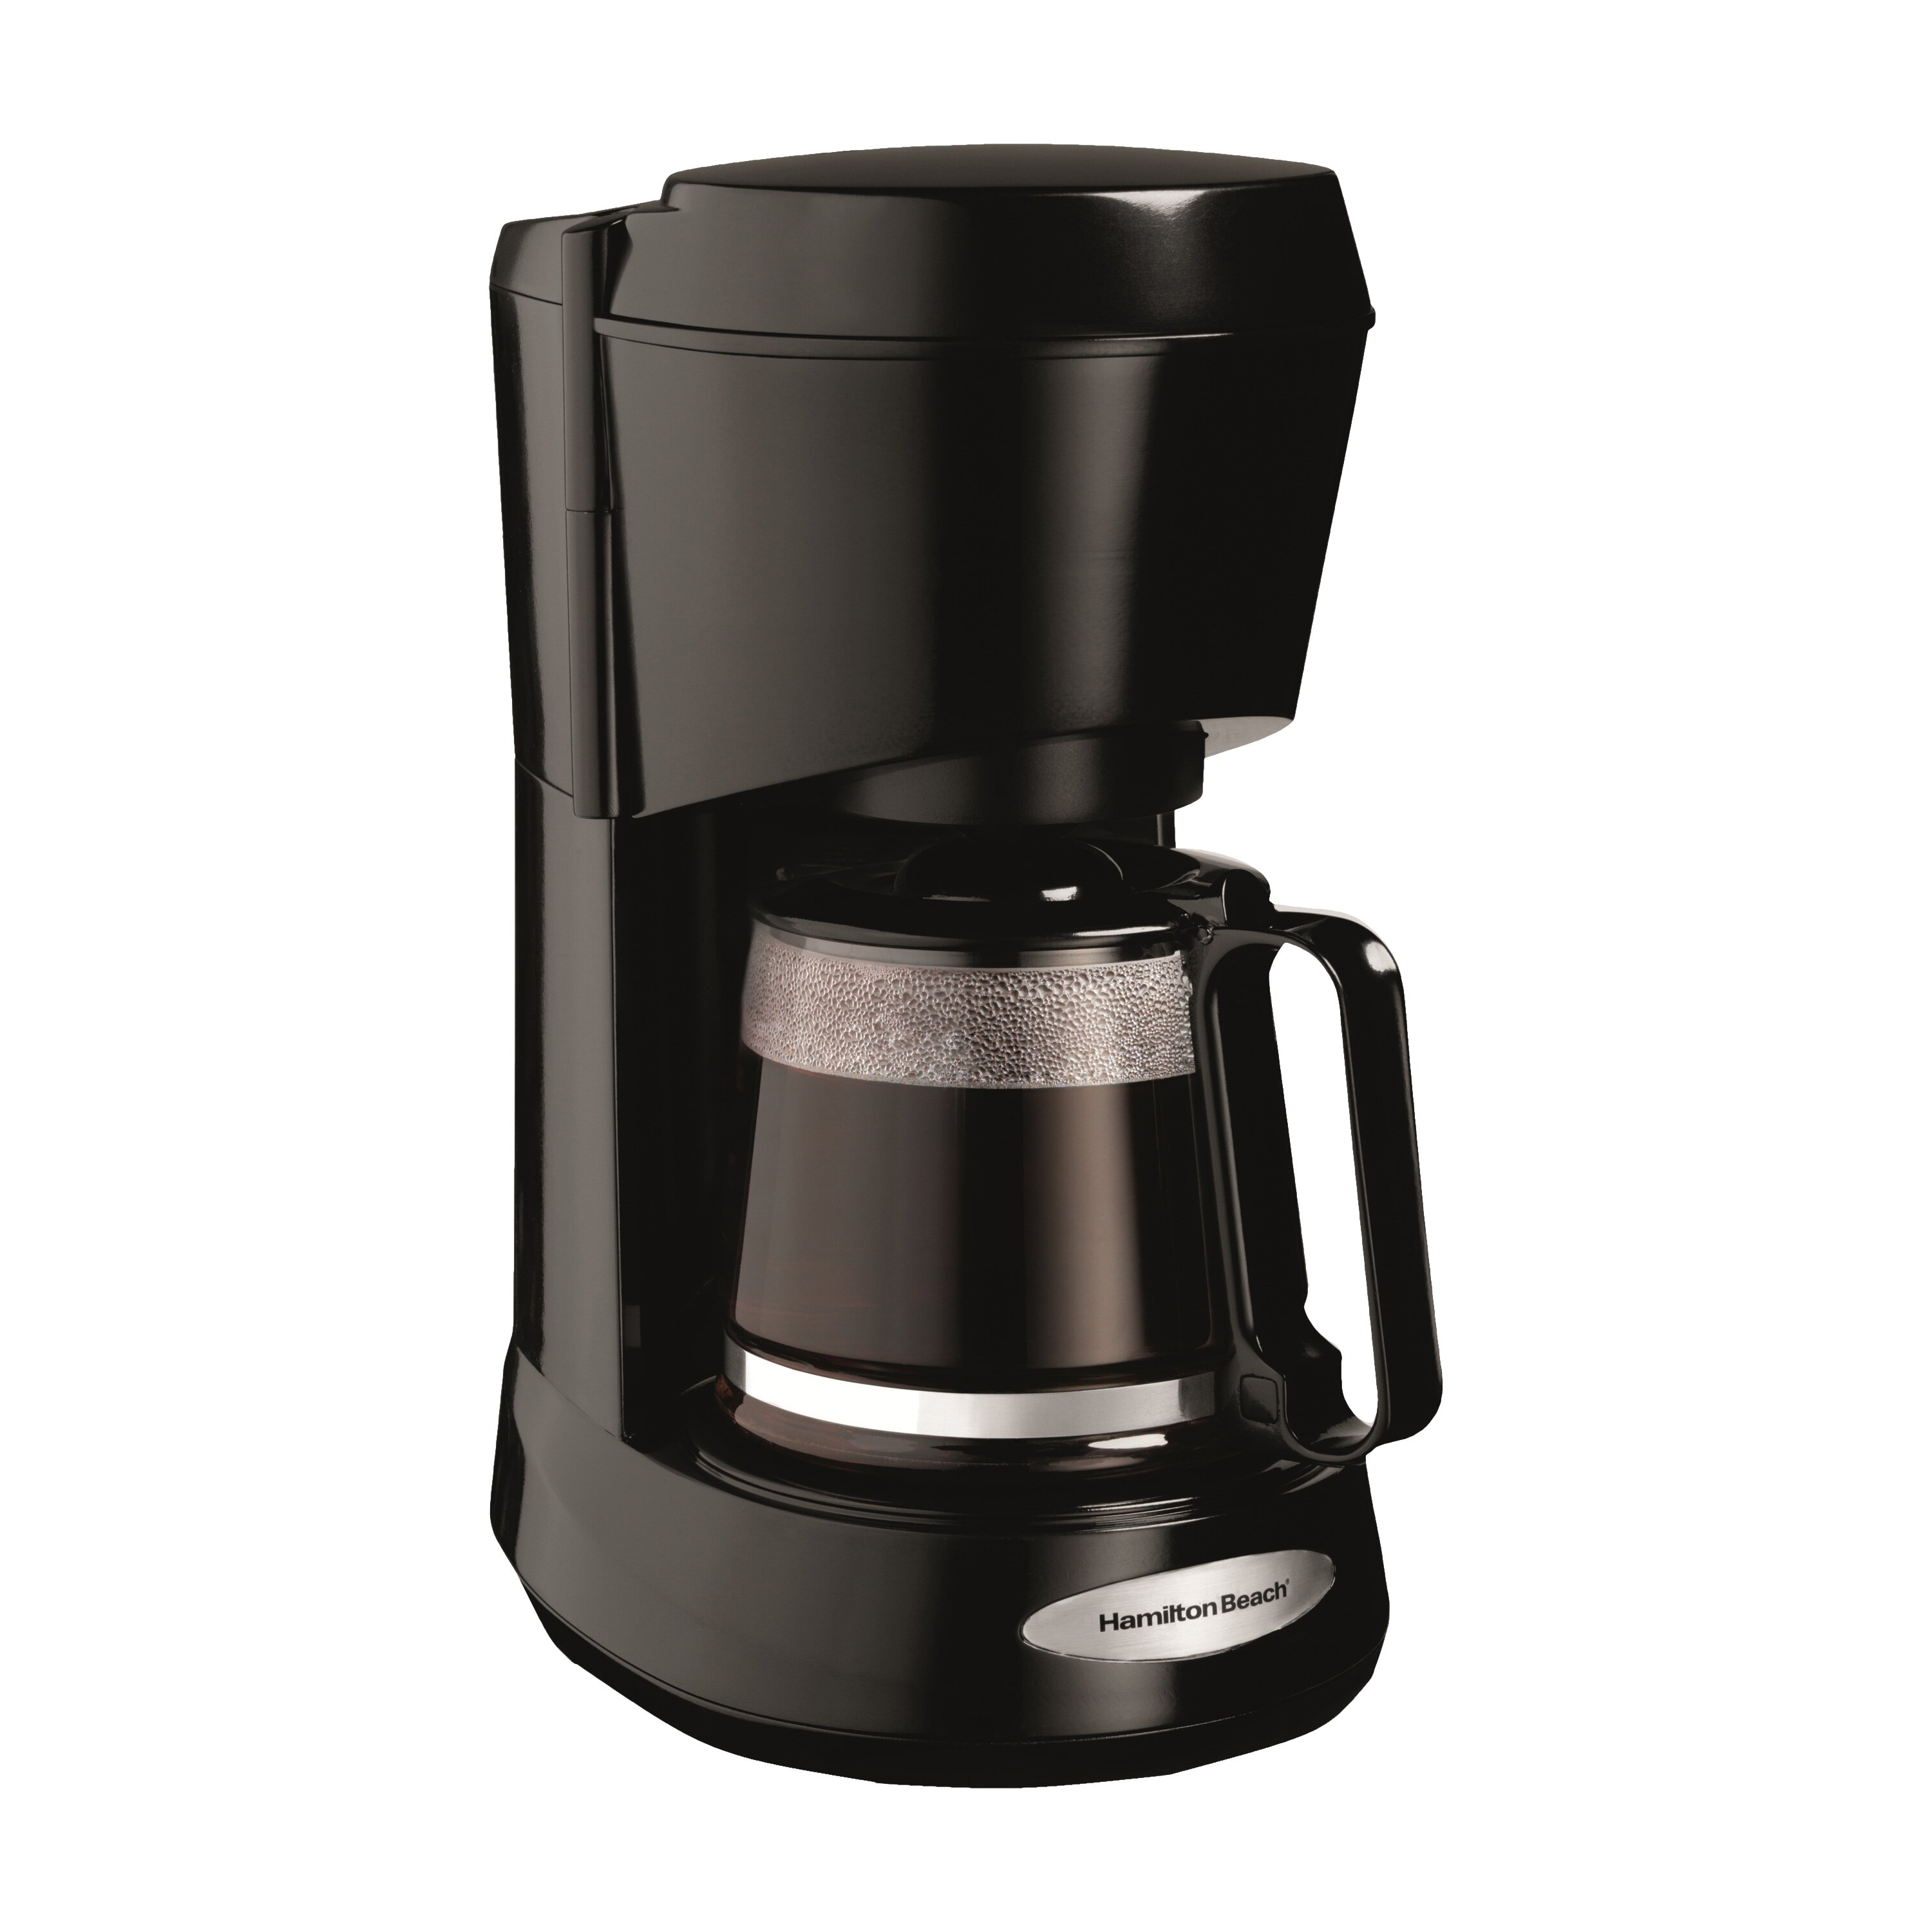 Hamilton beach 5 cup coffee maker reviews wayfair Coffee maker brands